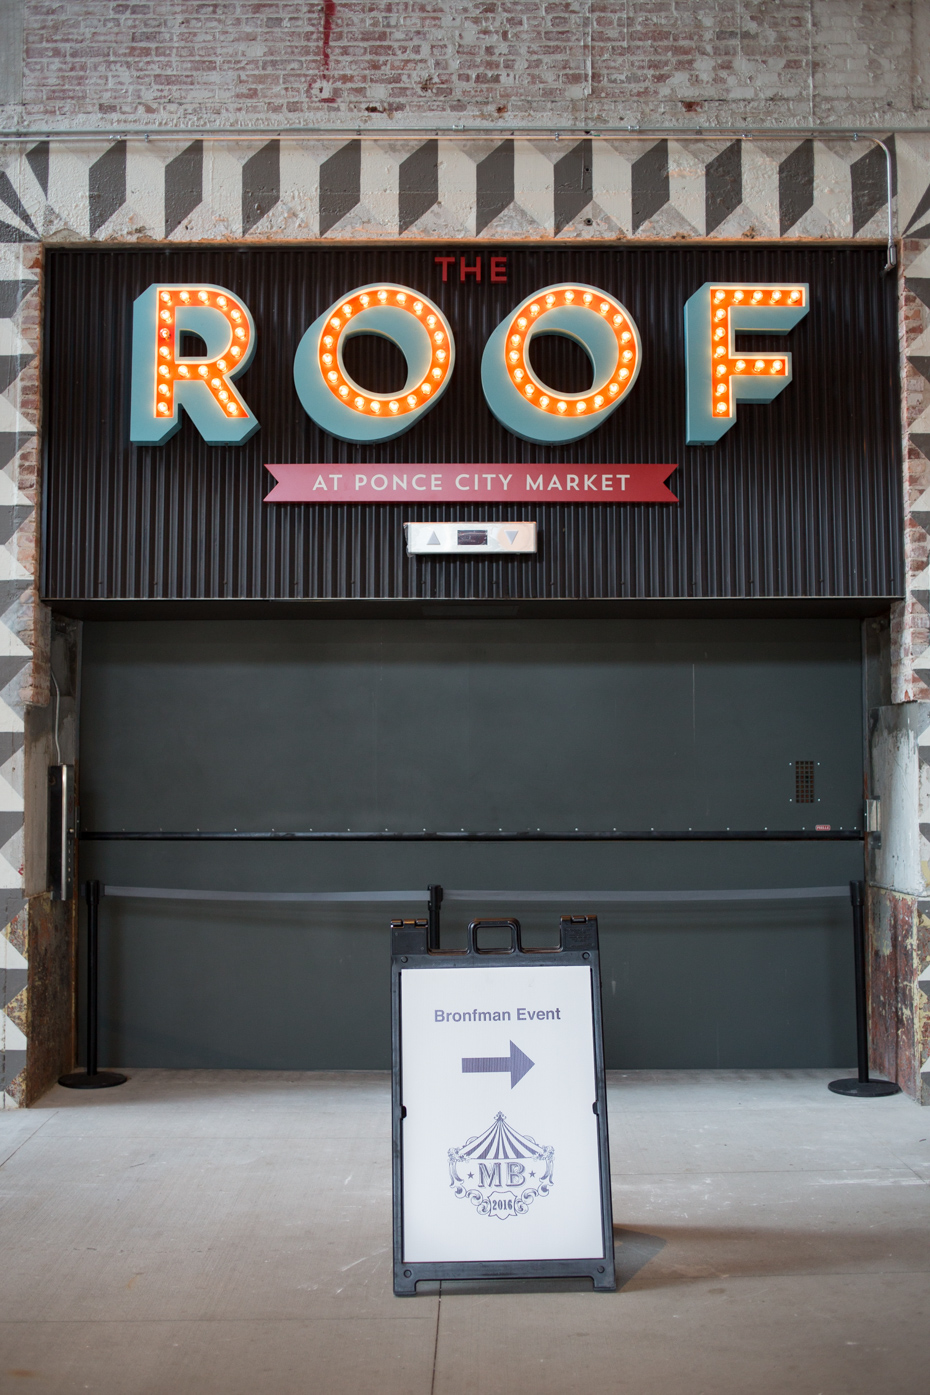 The Roof Ponce City Market